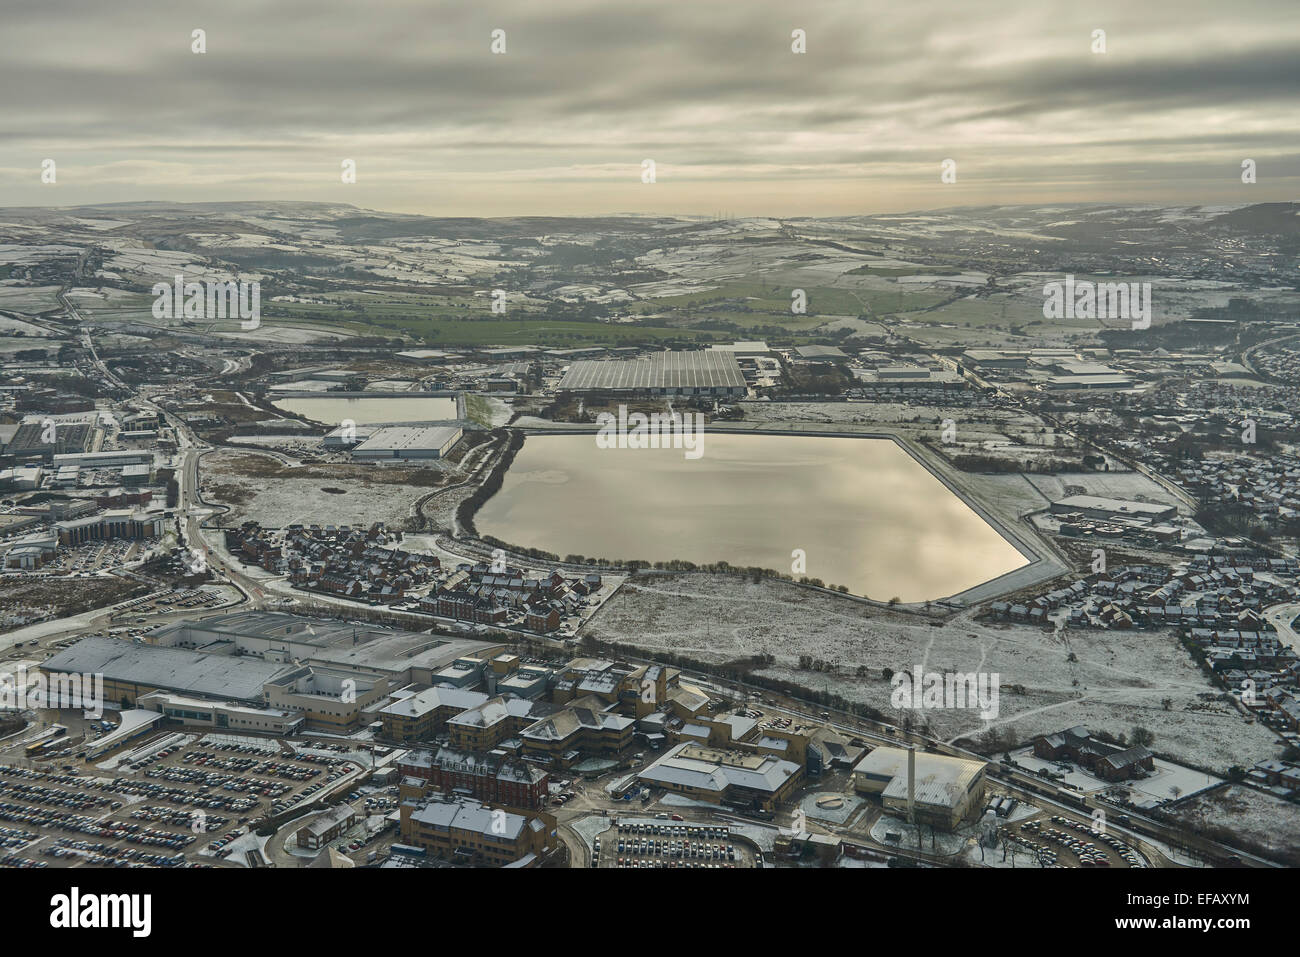 A winter aerial view from the southern edge of Blackburn over the Fishmoor Reservoir to the countryside beyond - Stock Image